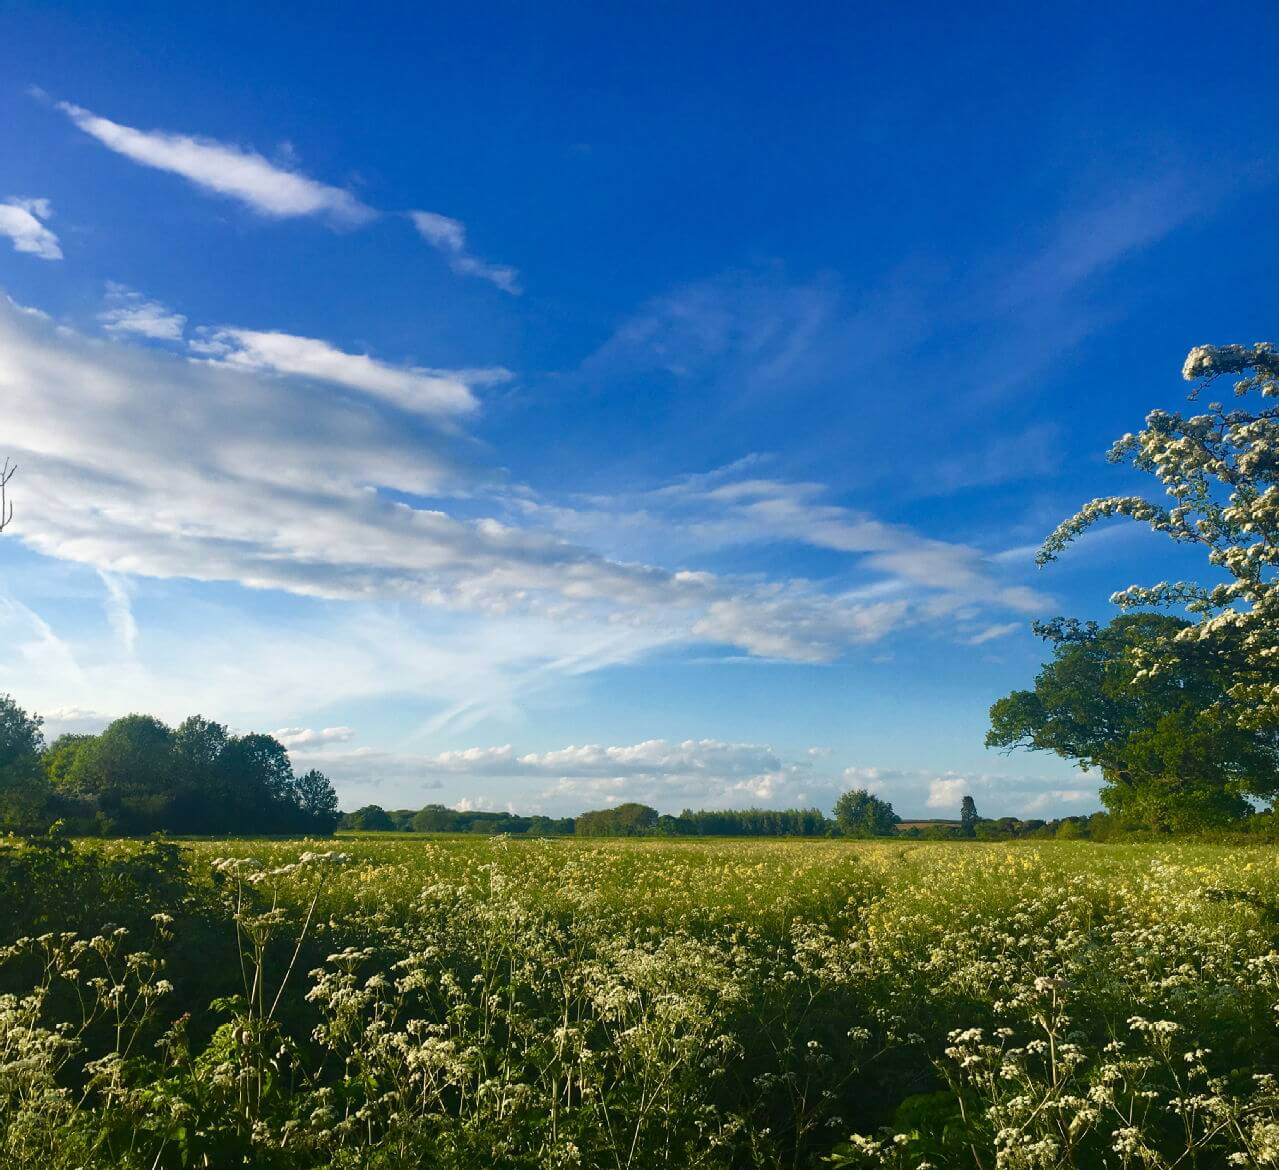 Leam is worth exploring- this was taken in Newbold Comyn